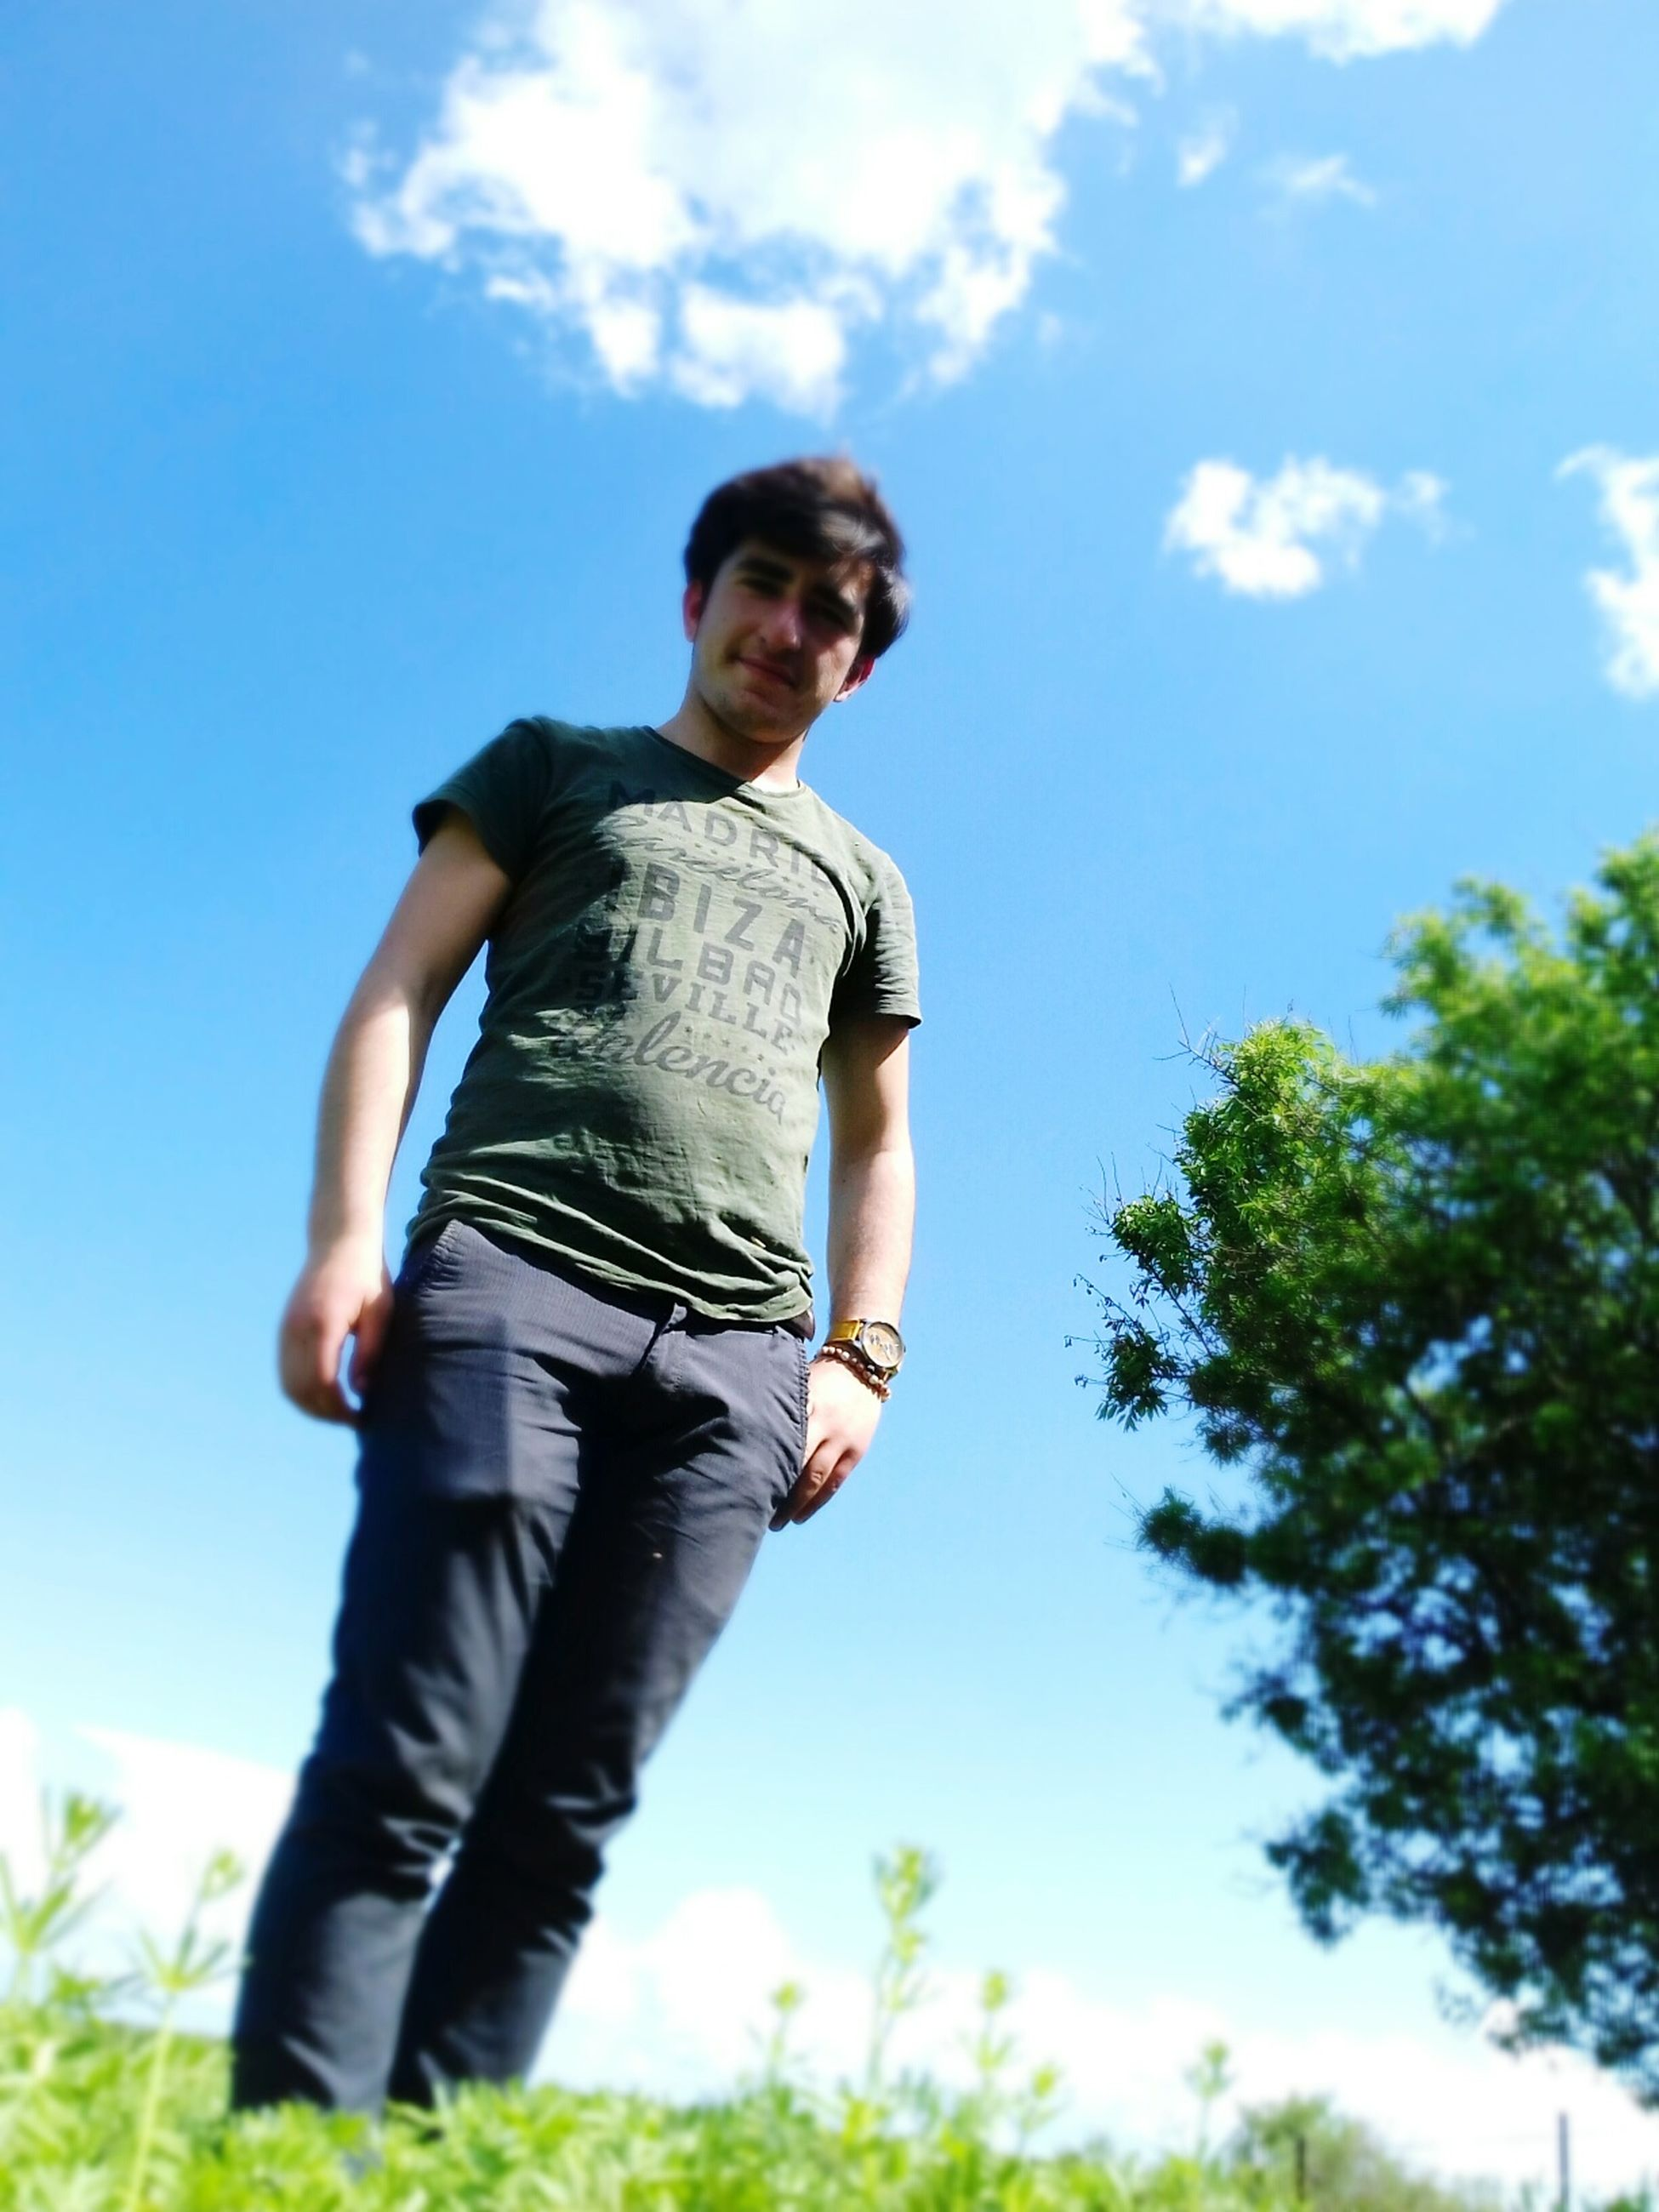 casual clothing, sky, one person, low angle view, tree, young adult, standing, real people, nature, young men, outdoors, day, blue, growth, grass, young women